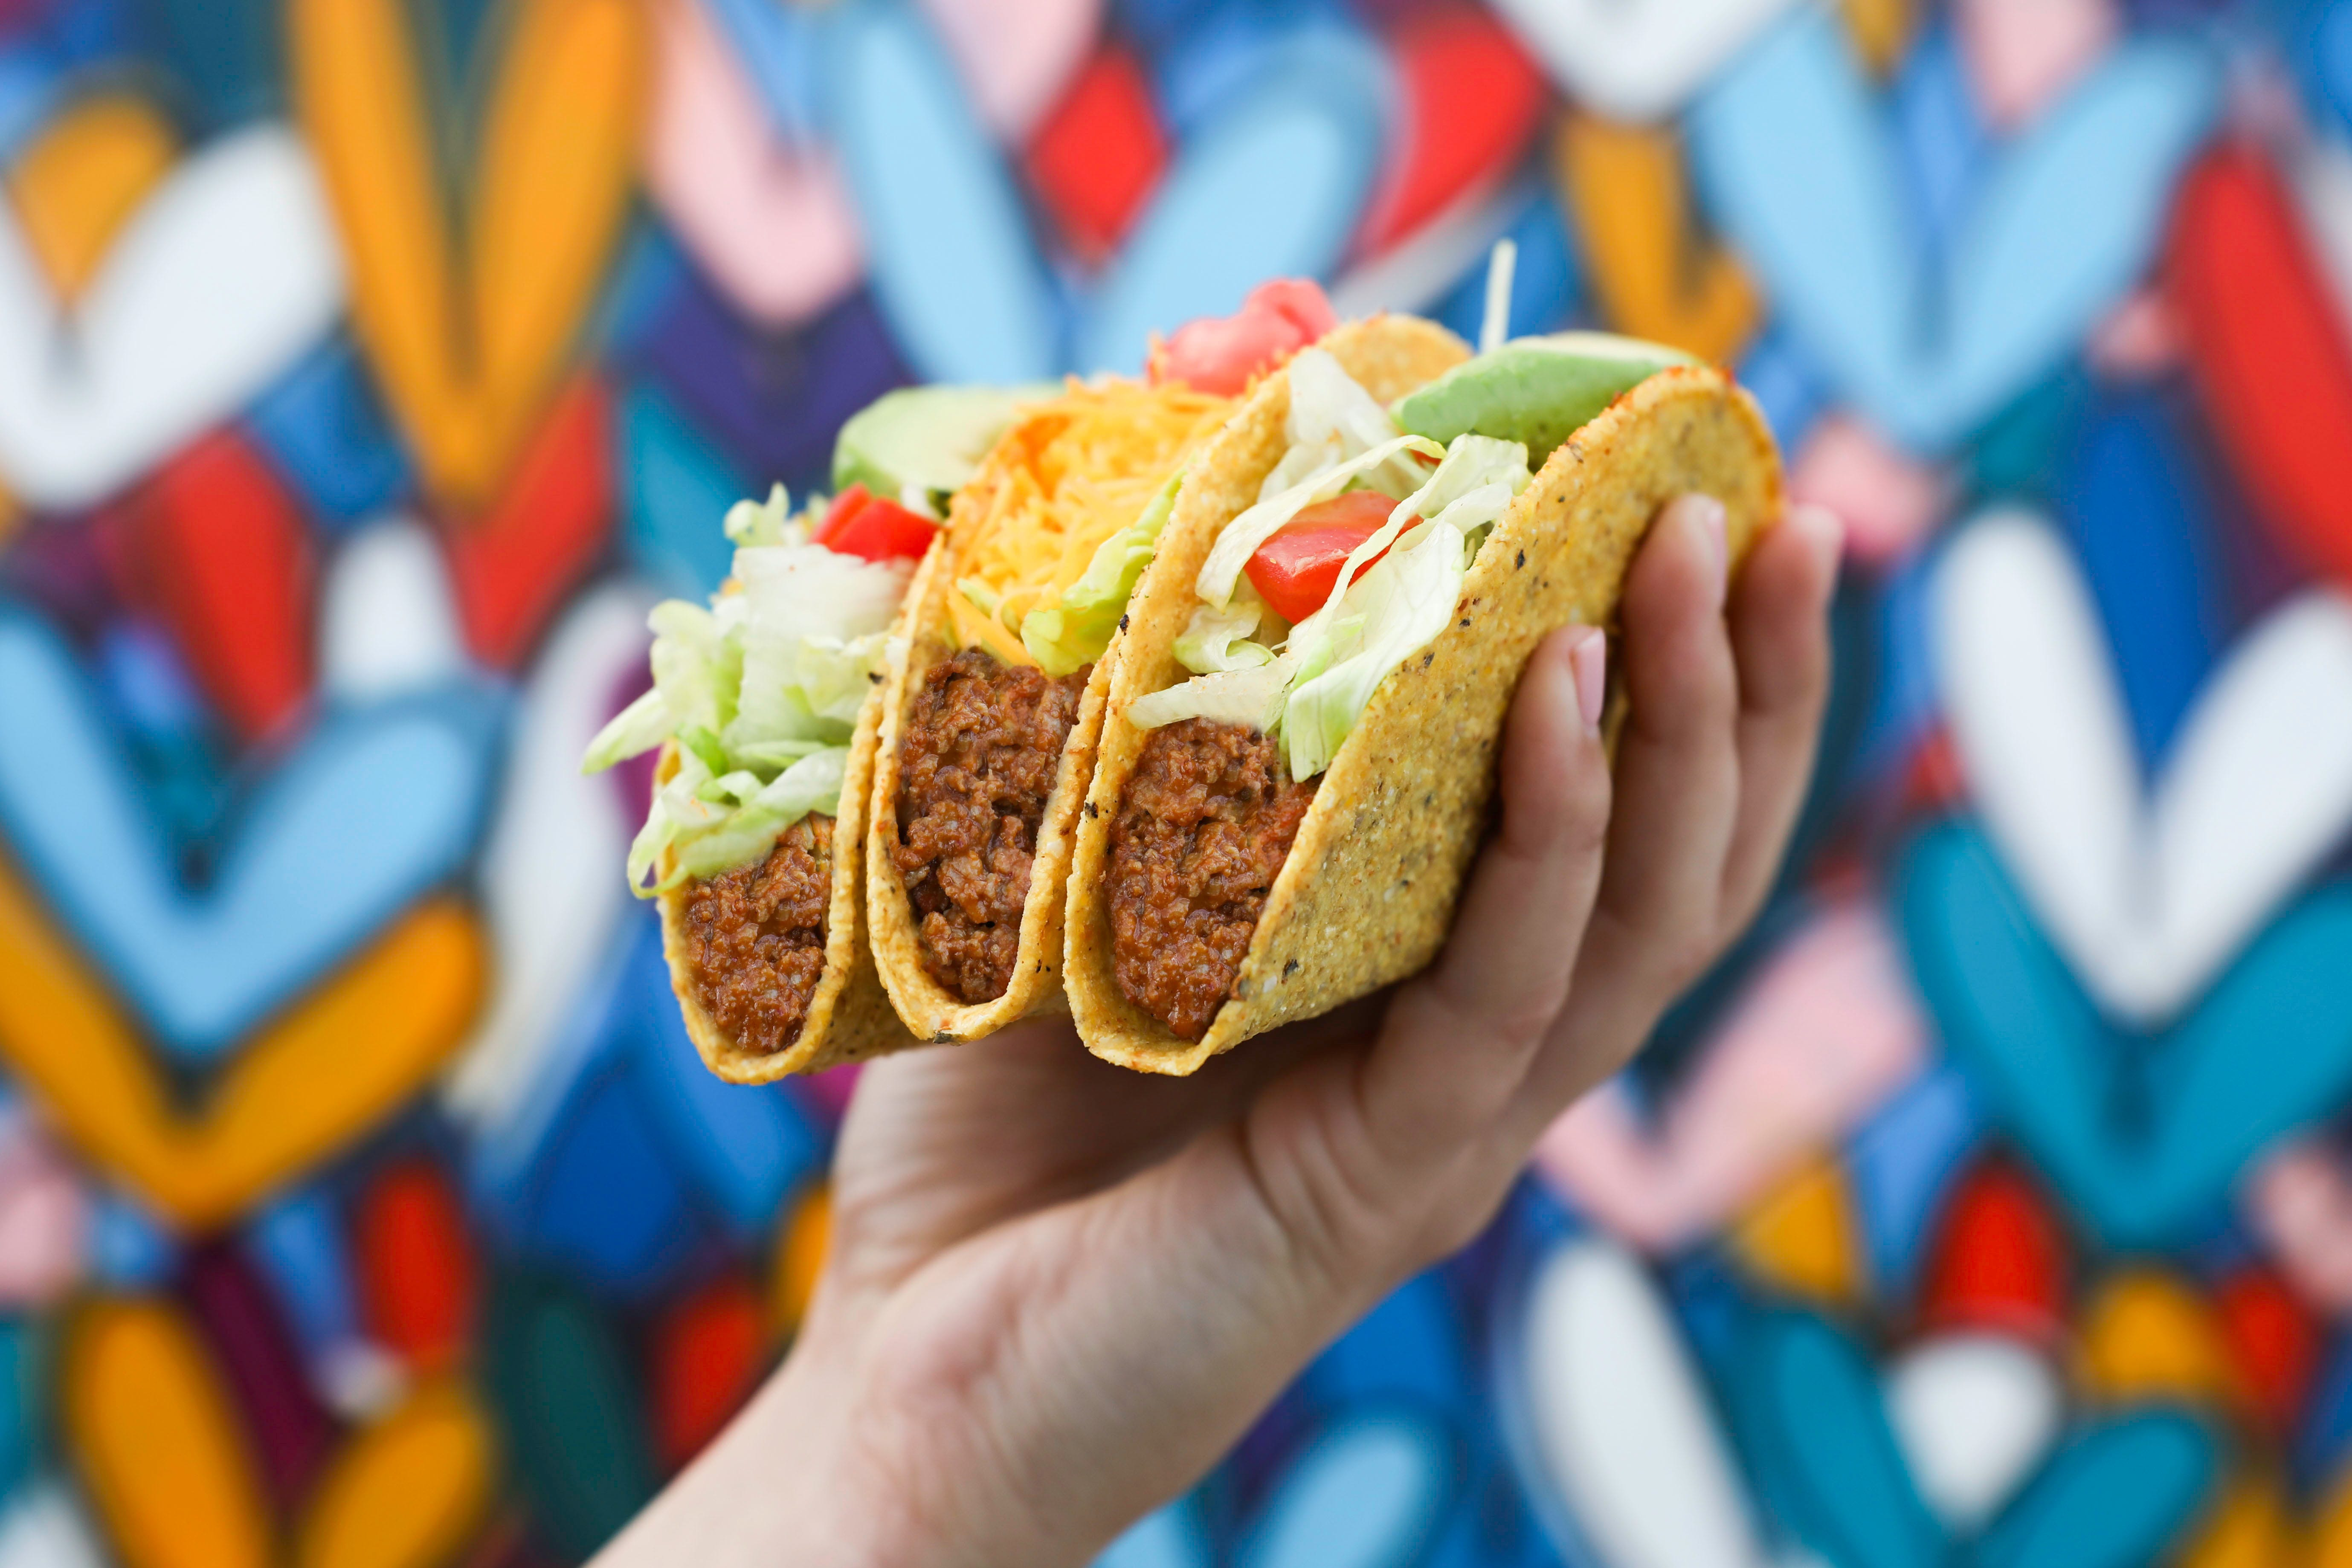 usatoday.com - Kelly Tyko, USA TODAY - Plant-based protein goes mainstream: Del Taco, Blaze latest to announce more vegan options